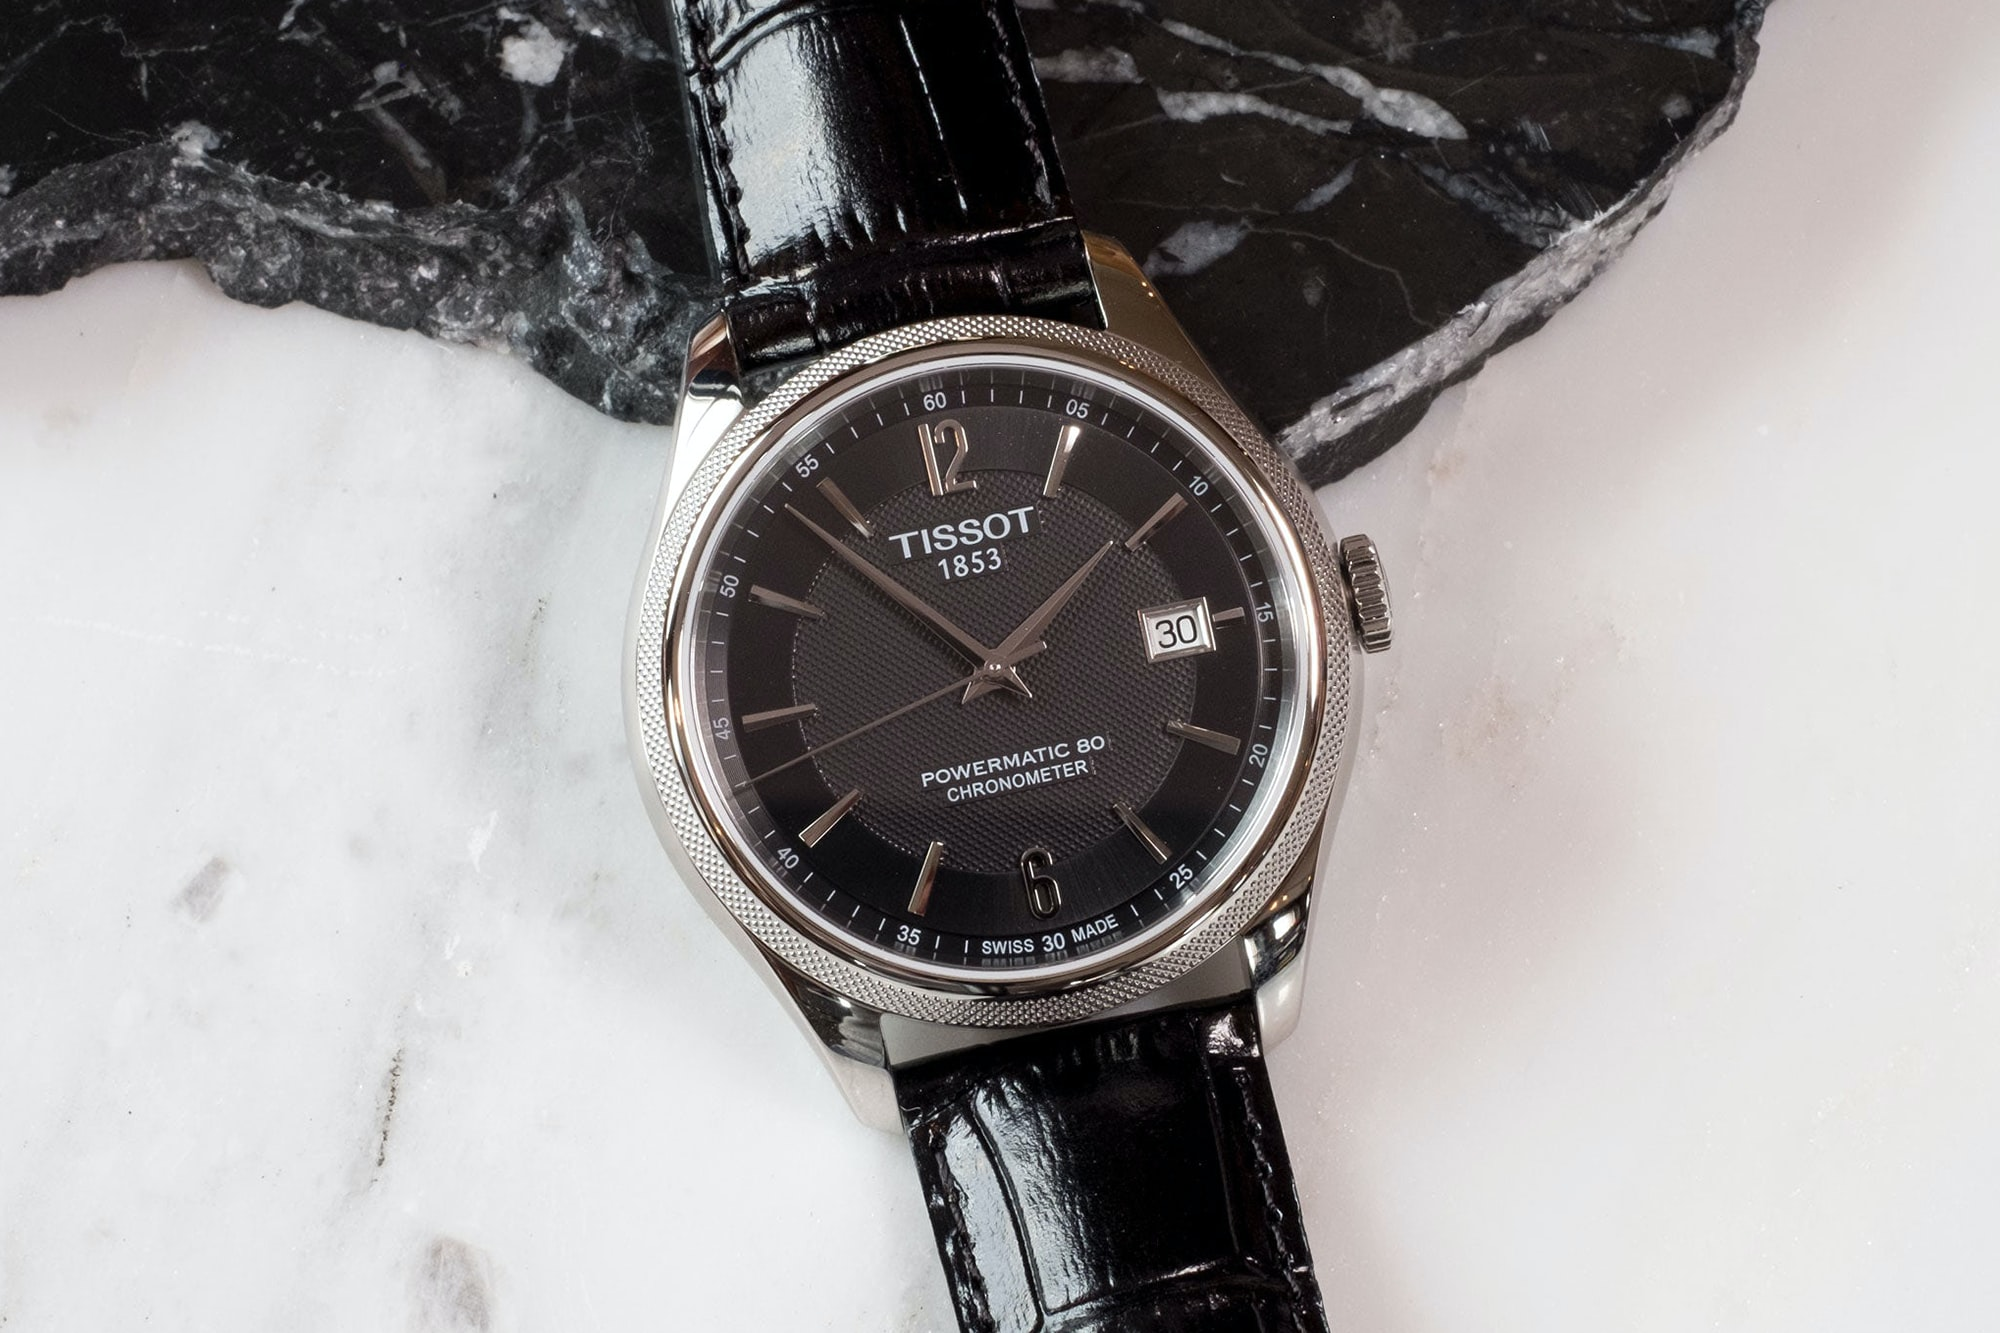 A Week On The Wrist: The Baume & Mercier Clifton Baumatic COSC tissot 10